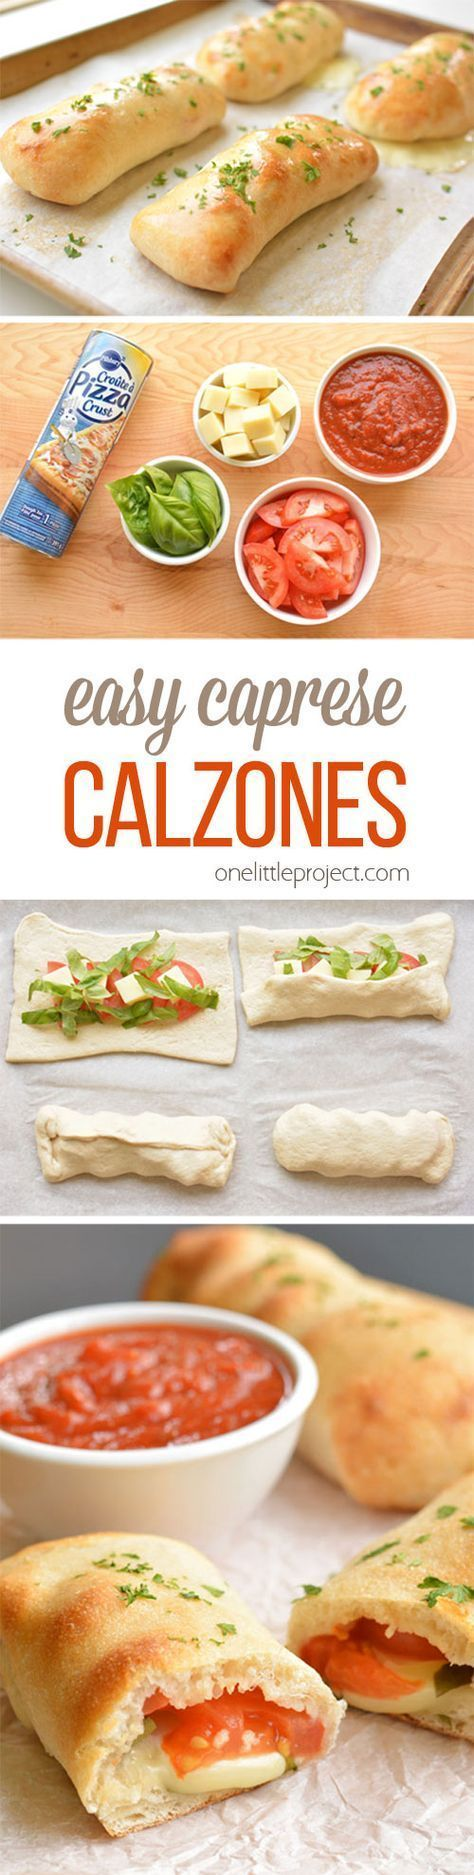 Easy Caprese Calzones - One Little Project